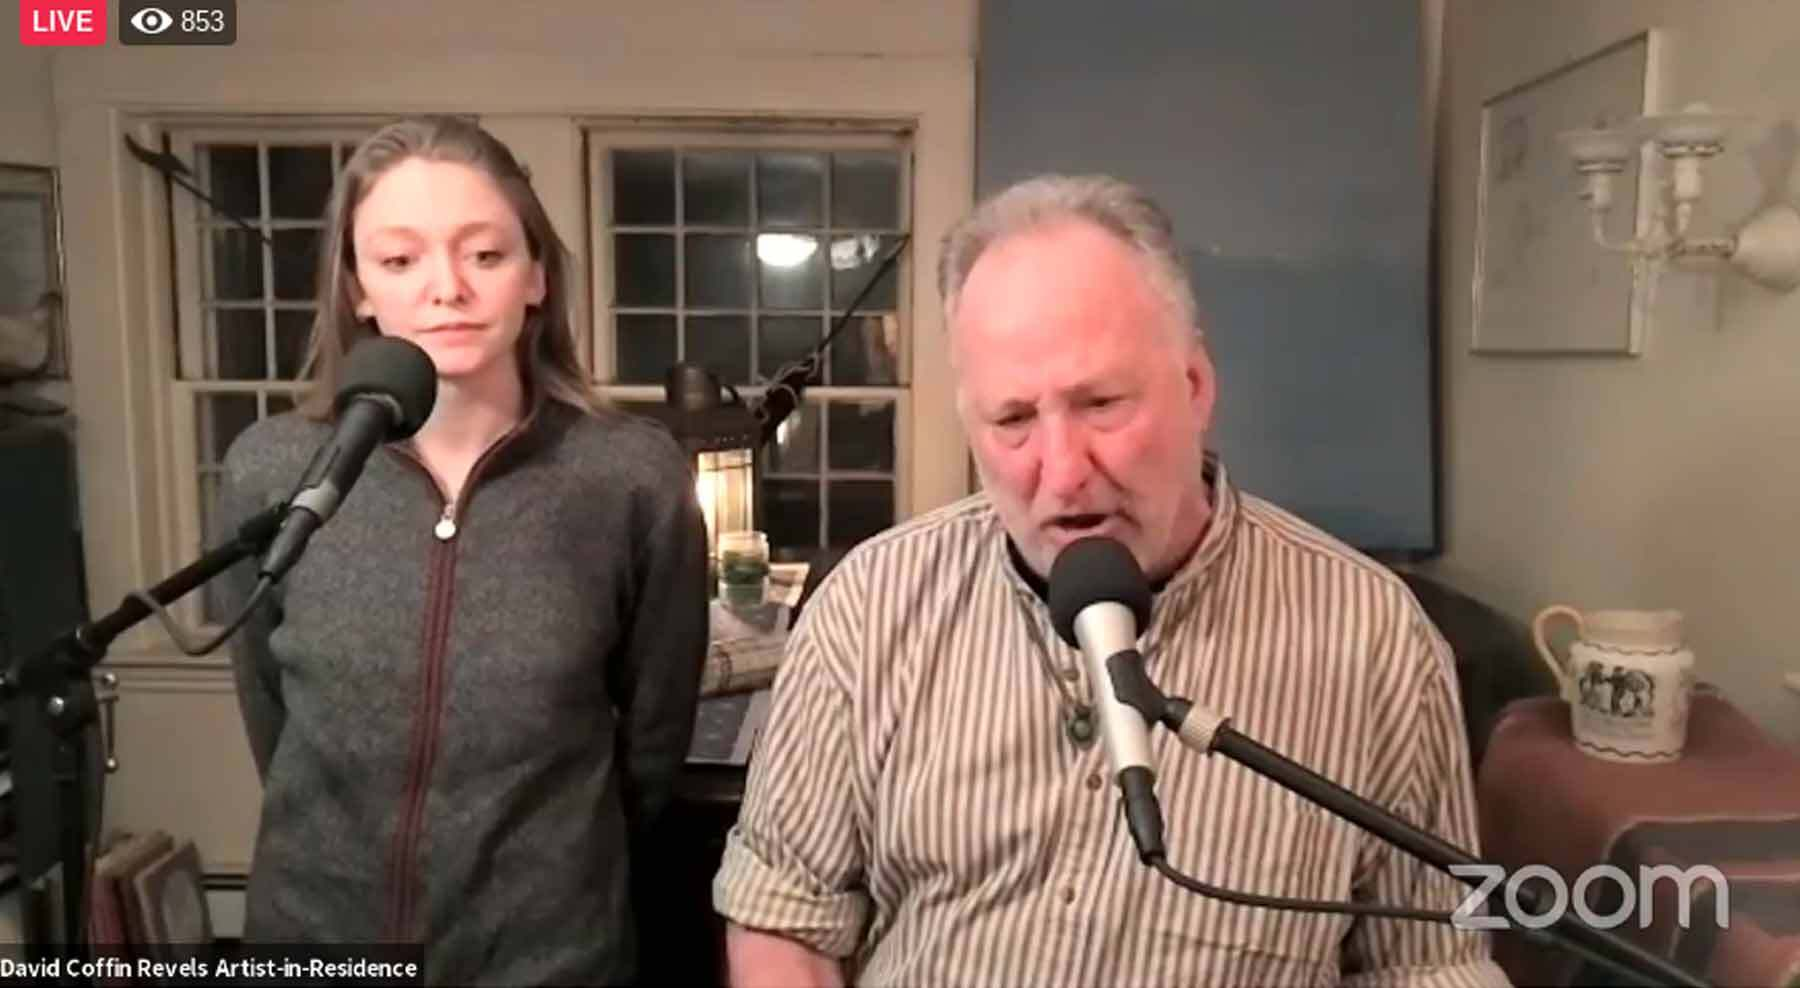 David Coffin and his daughter Linnea lead a group of 1,000 people on a Facebook Live chanty singalong.